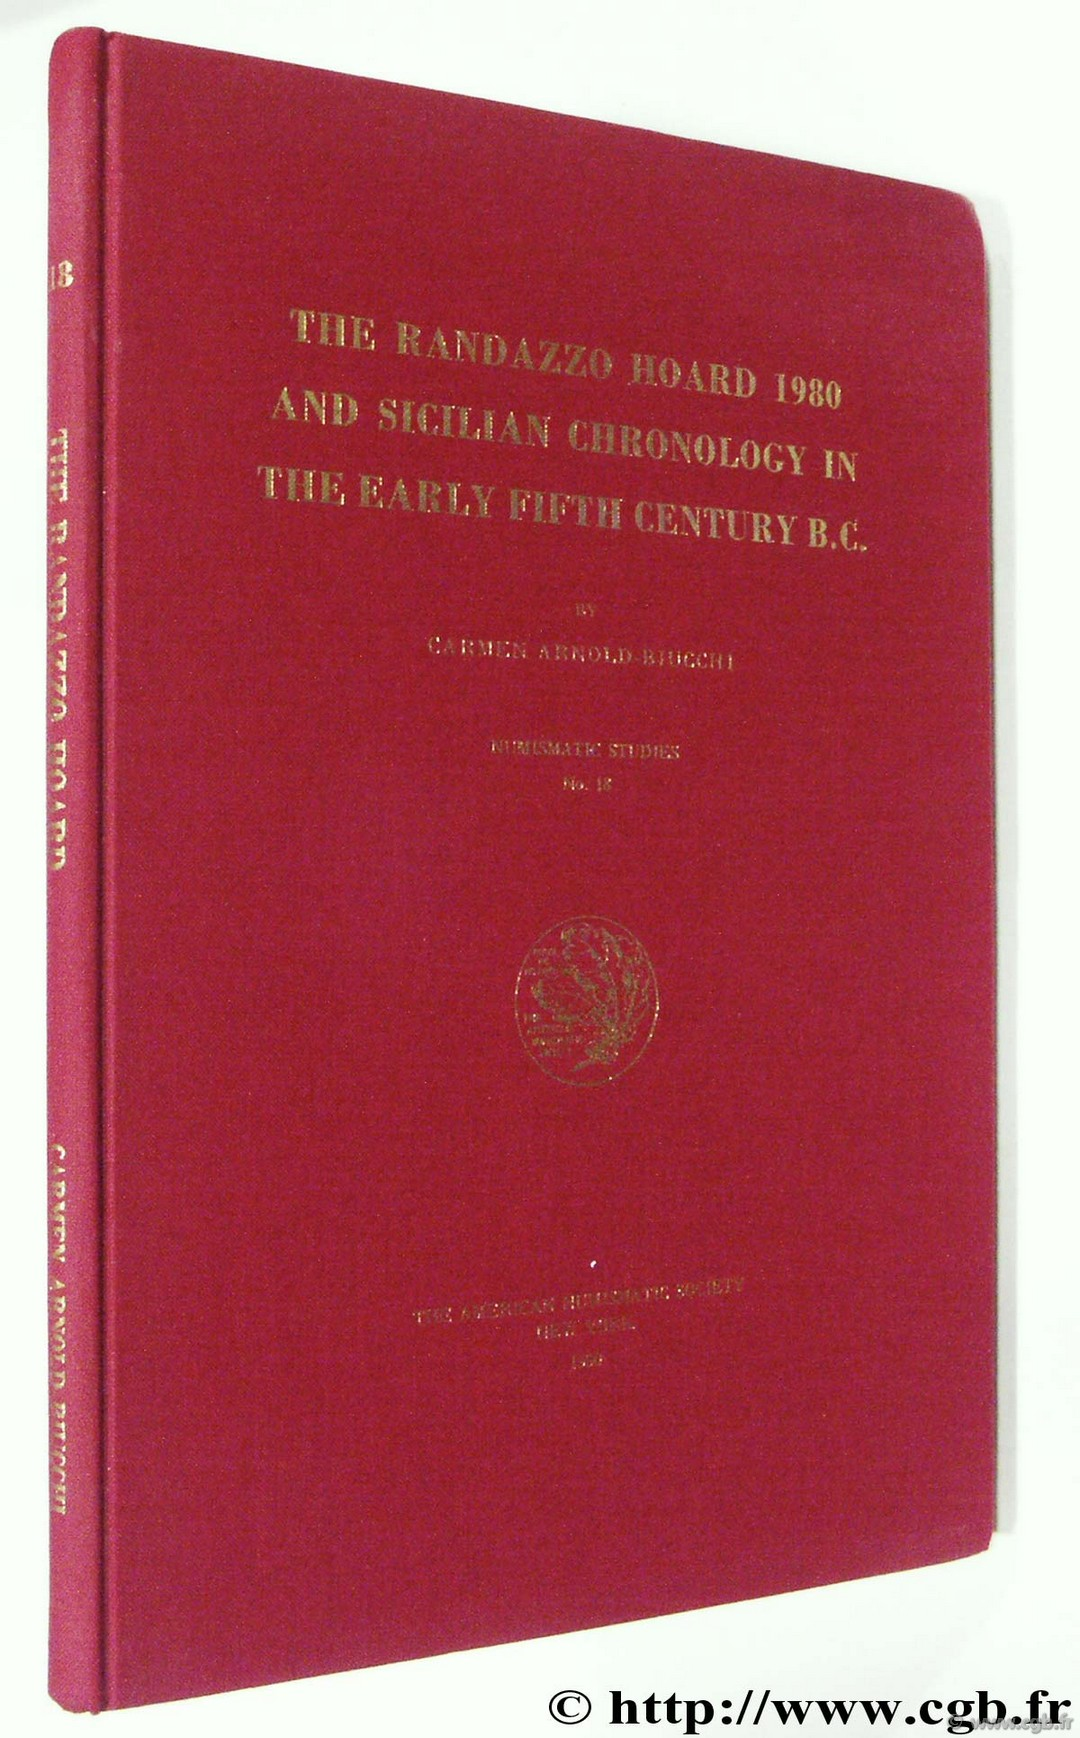 The Randazzo Hoard 1980 and Sicilian Chronology in the early fifth century B.C., Numismatic Studies 18, The American Numismatic Society ARNOLD-BUCCHI C.